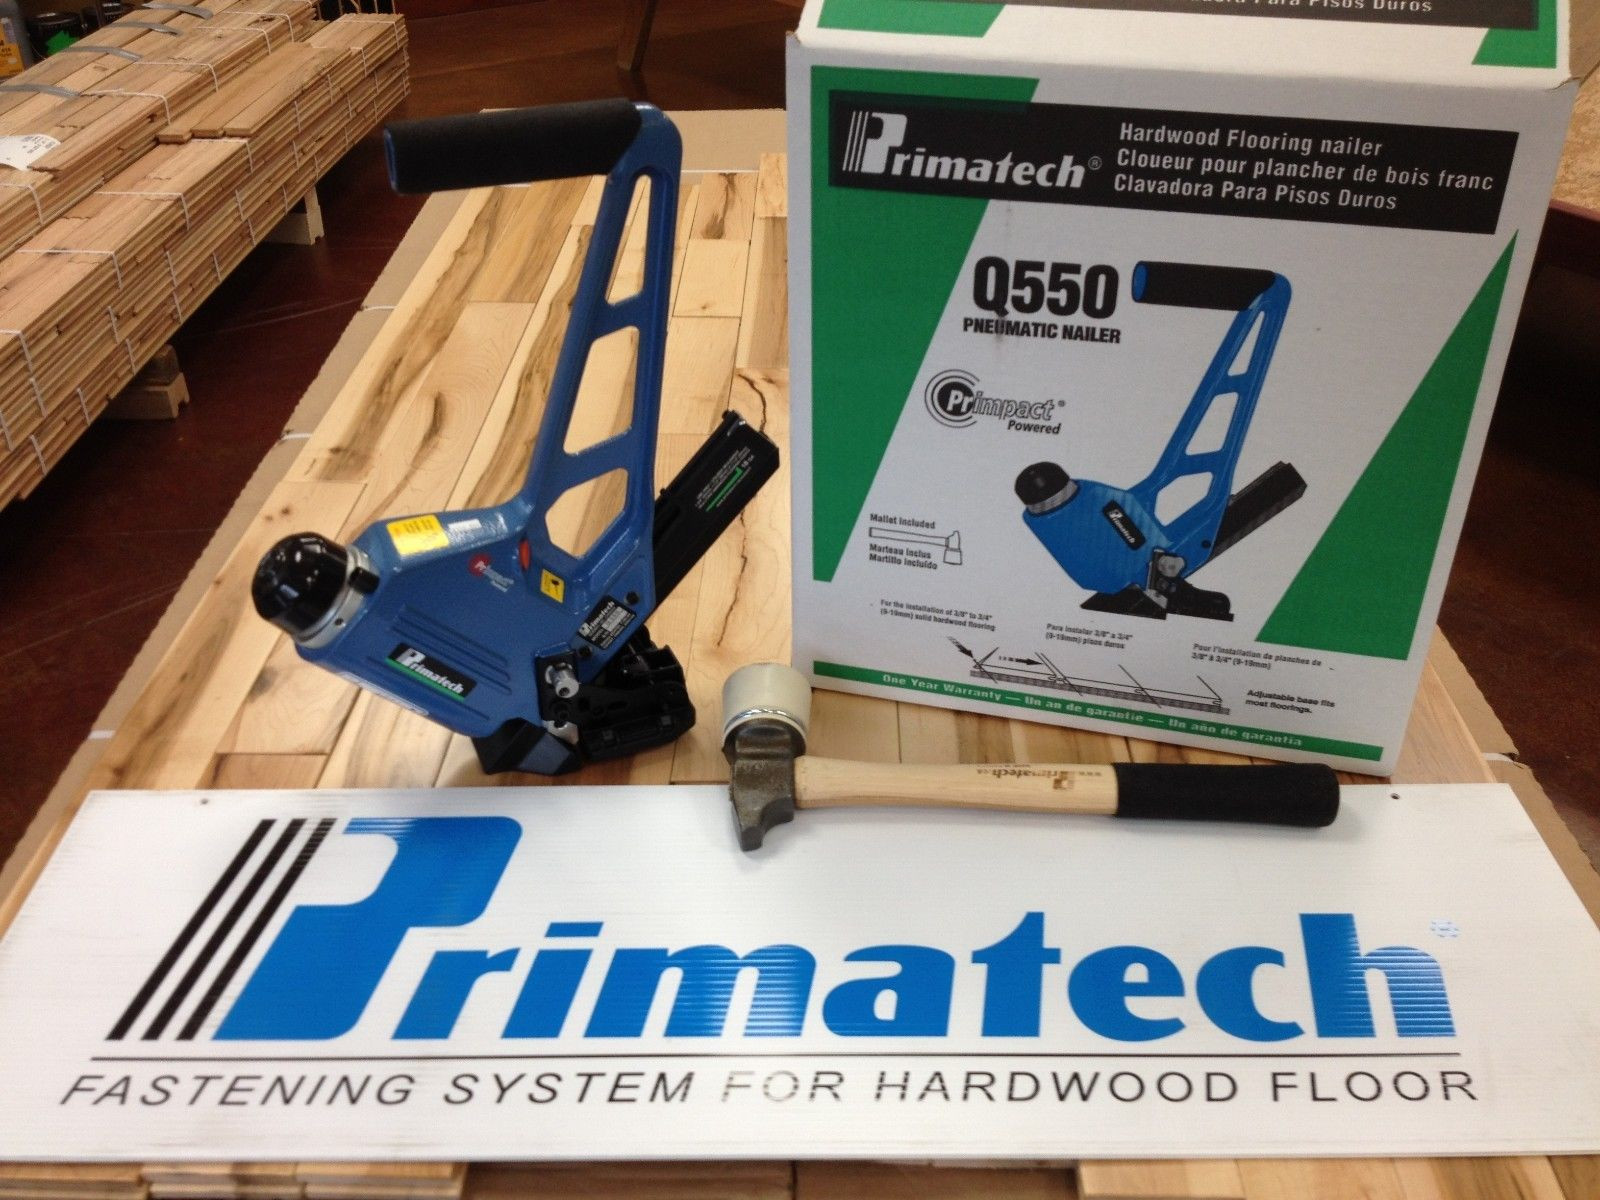 hardwood floor nailer hammer of primatech q550 18 ga pneumatic adjustable flooring nailer ebay within norton secured powered by verisign